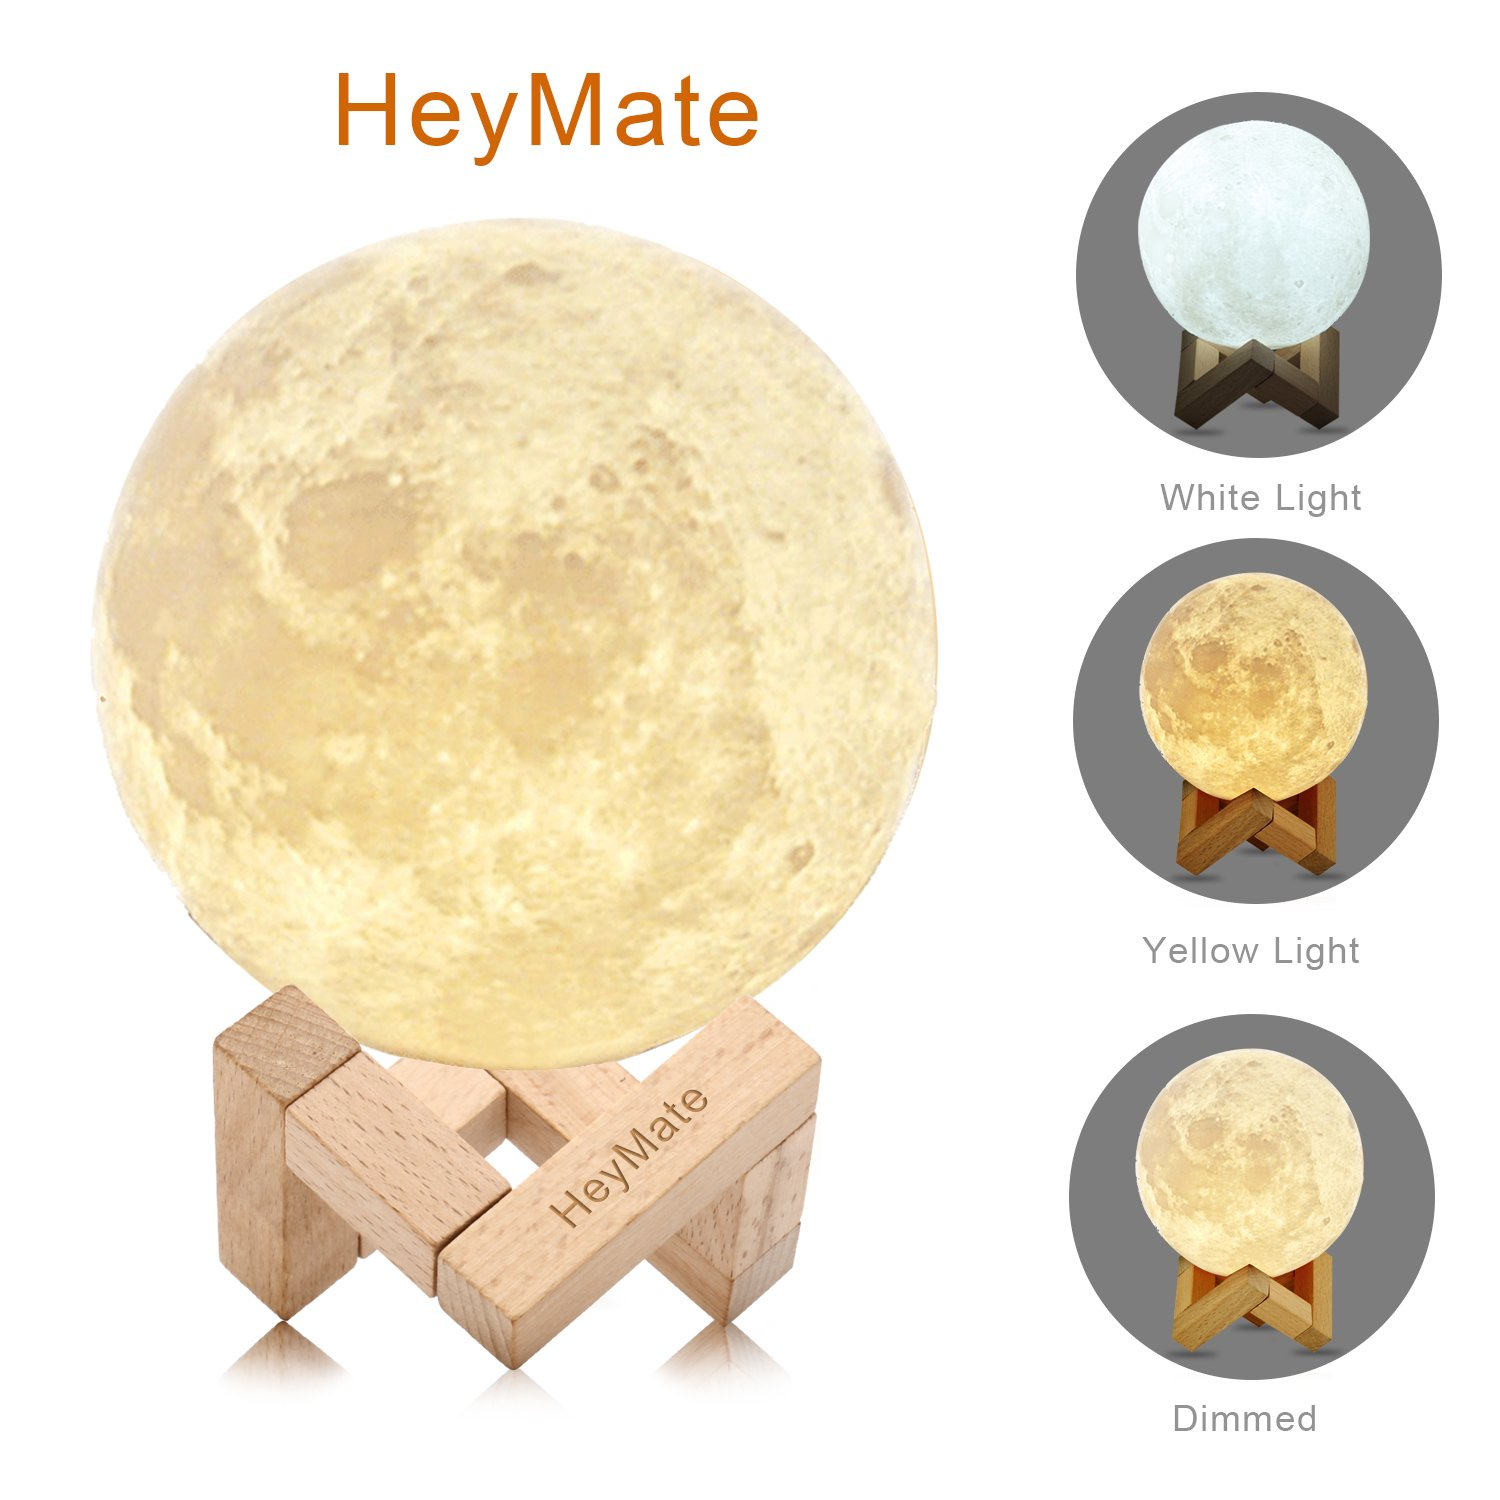 HeyMate 3D Printing Lunar Lamp Touch Control Night Light as Kids Women Girls Gift, 4.7'' Rechargeable Moon Lamp with Wooden Holder, Warm Cool White Dimmable Touch Control